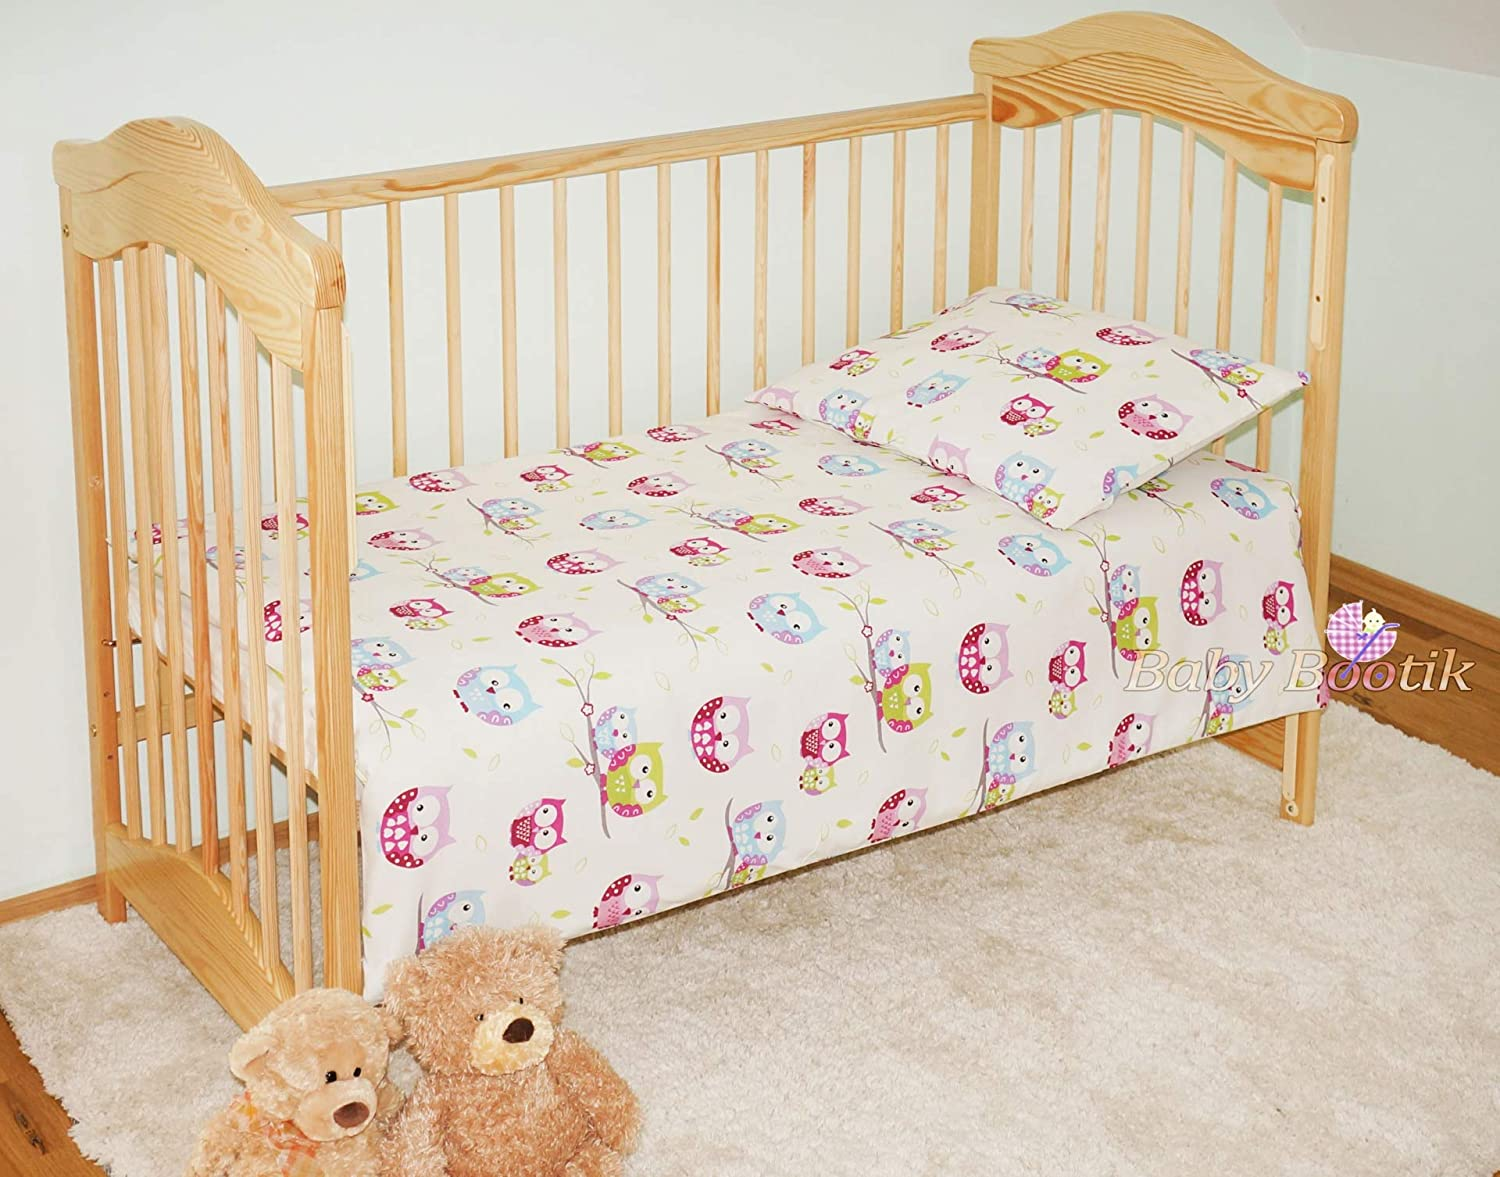 2 Piece Baby Children Quilt Duvet /& Pillow Set 120x90 cm to fit Toddler Cot Bed 23